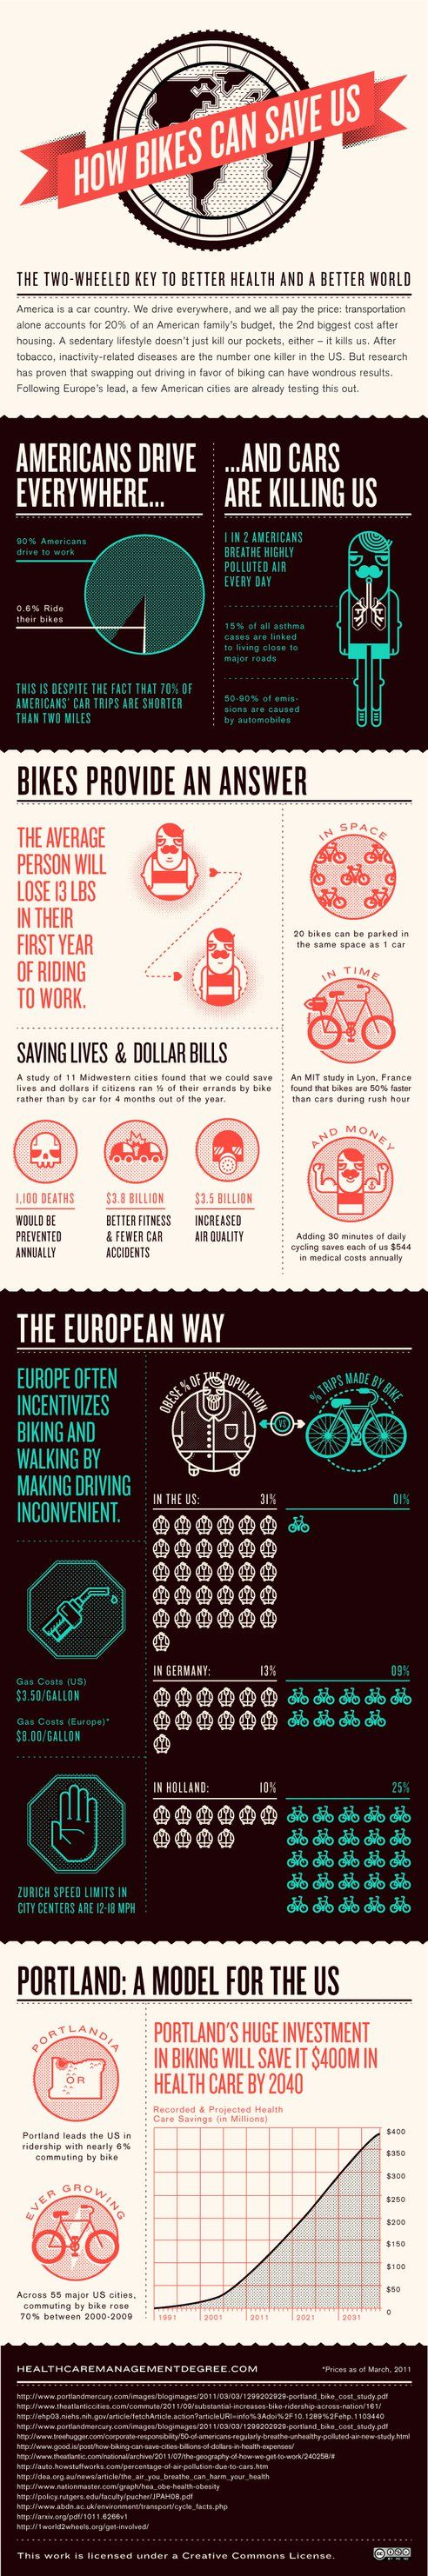 Bikes can save us: Work Hard, Riding A Bike, Benefits Of, Bike Riding, Save, Fit Exercise, Colors Design, Infographic, Health Fit